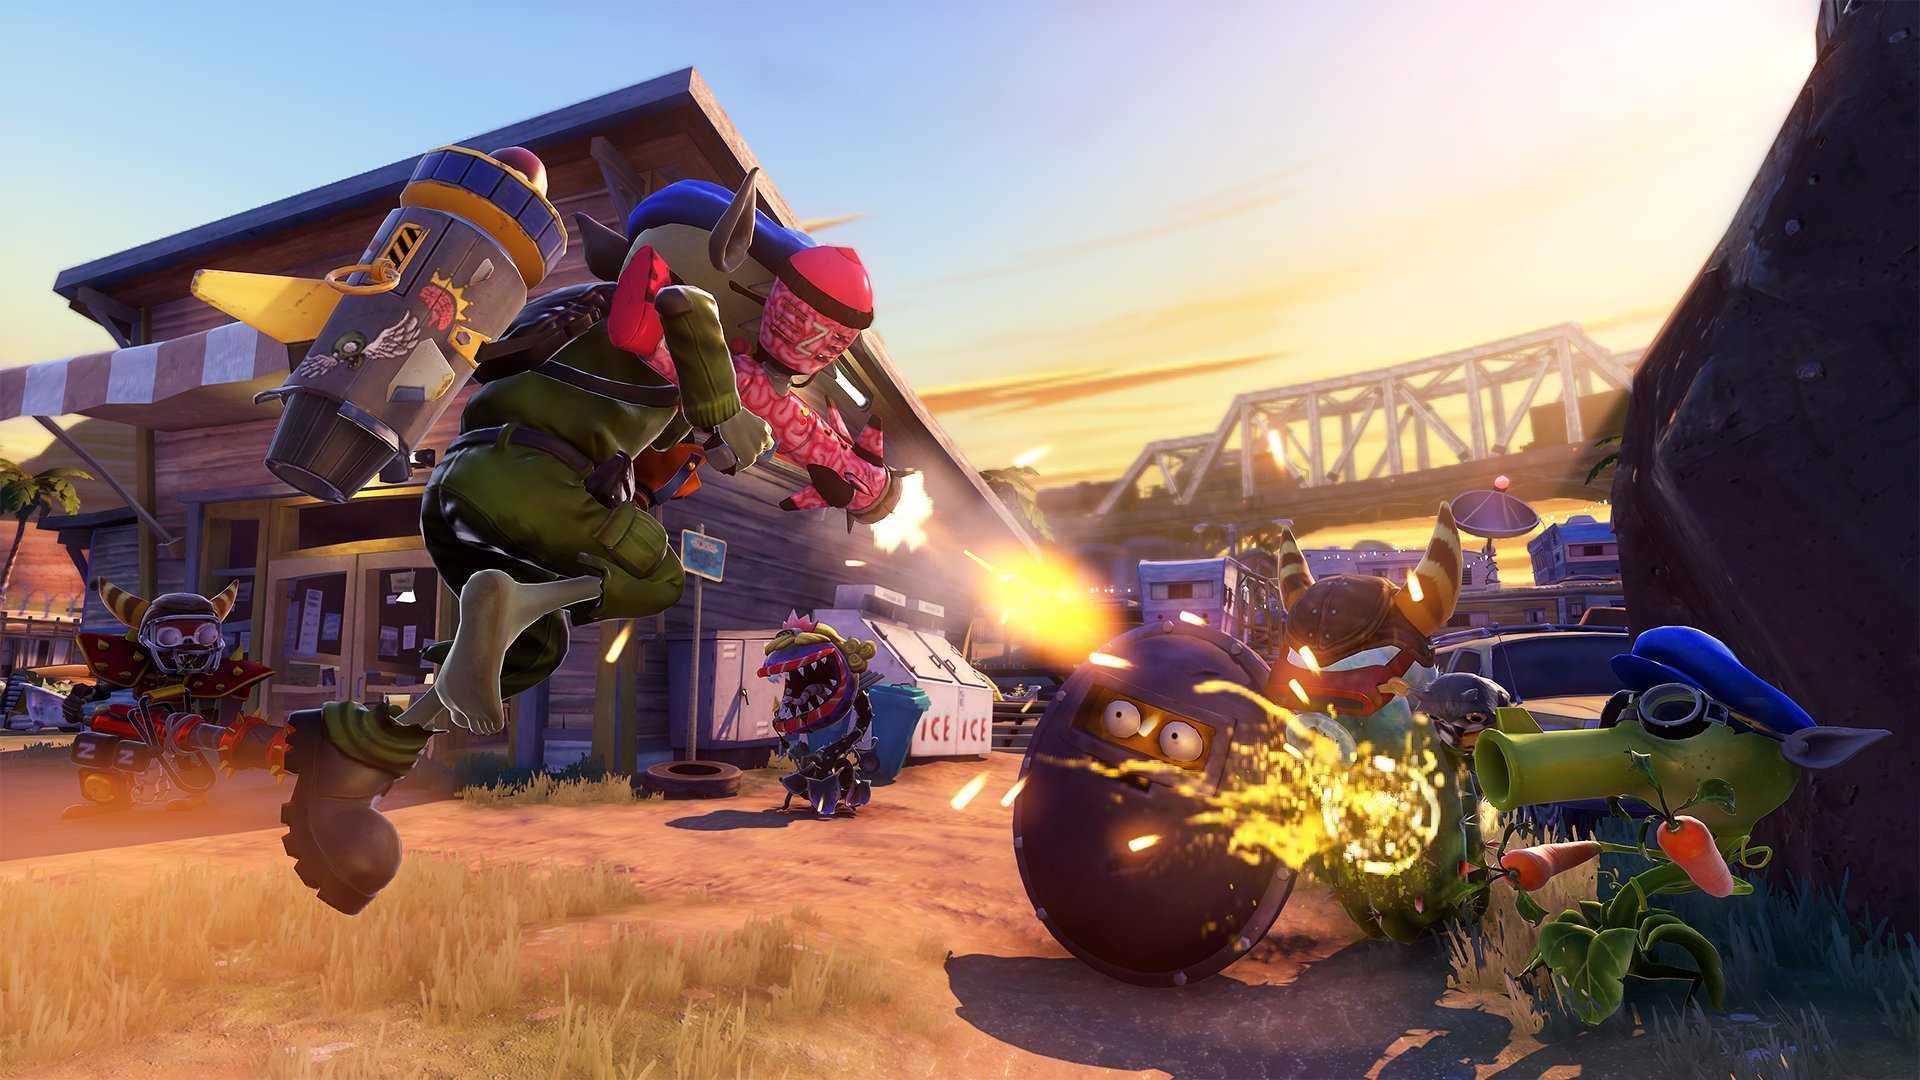 Plants vs Zombies Garden Warfare(Online Play Required) - PlayStation 3